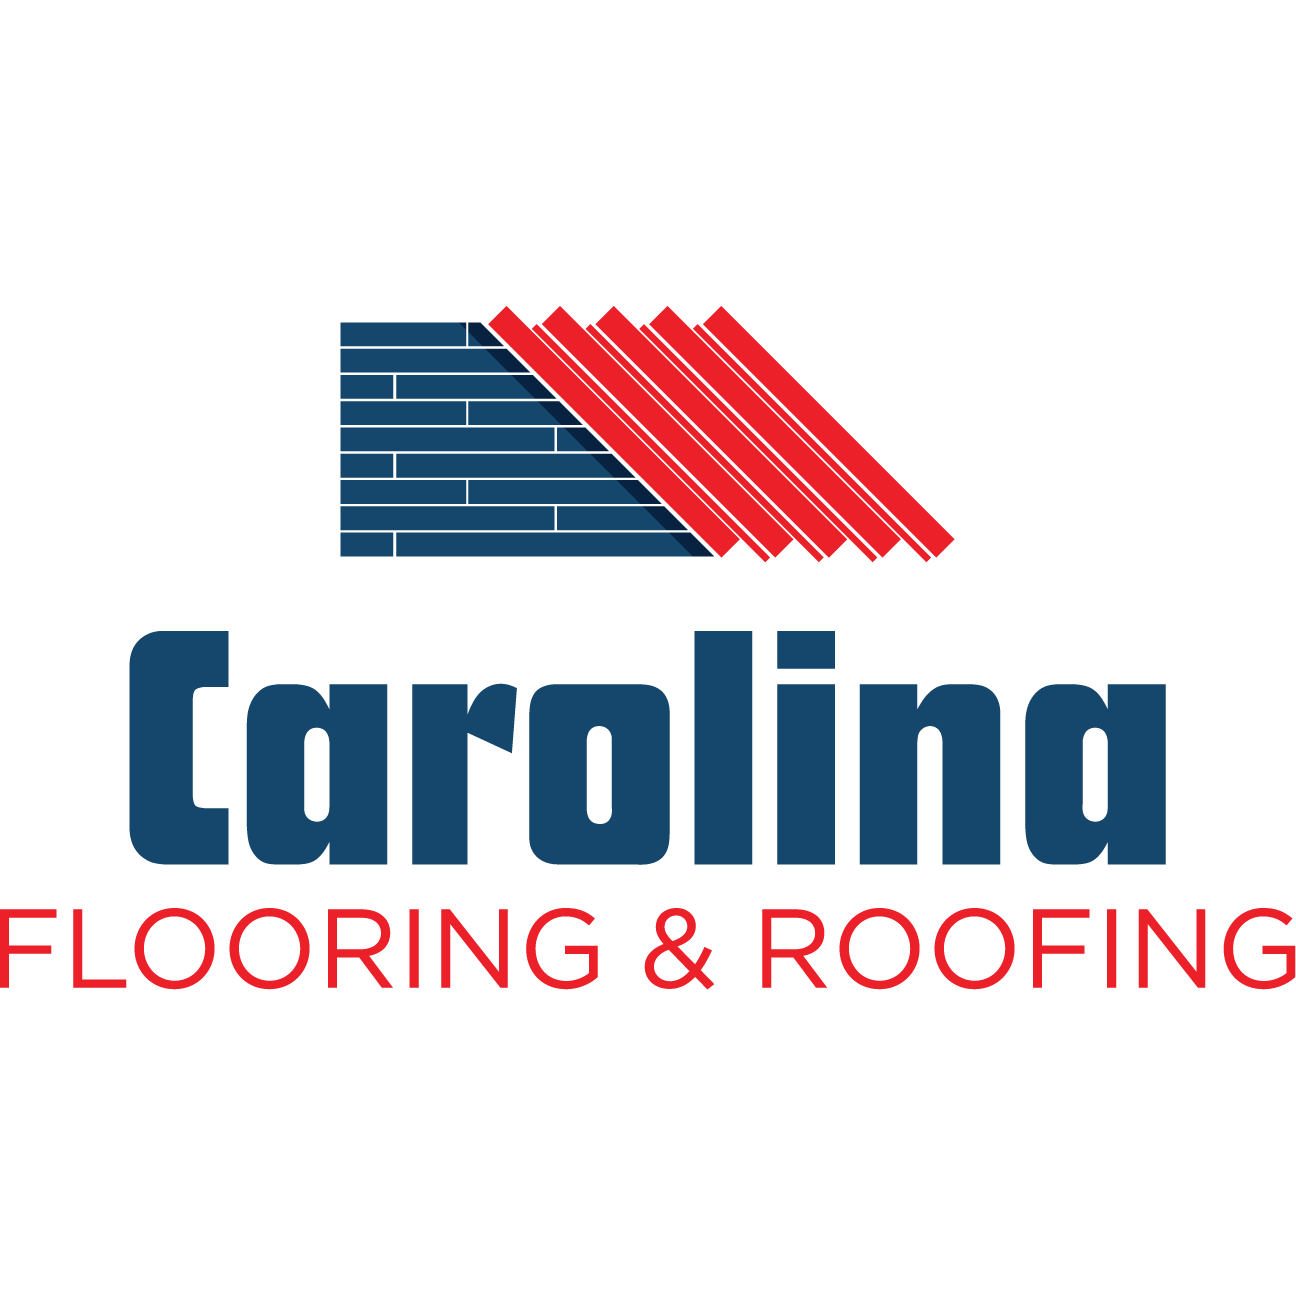 Carolina Flooring and Roofing